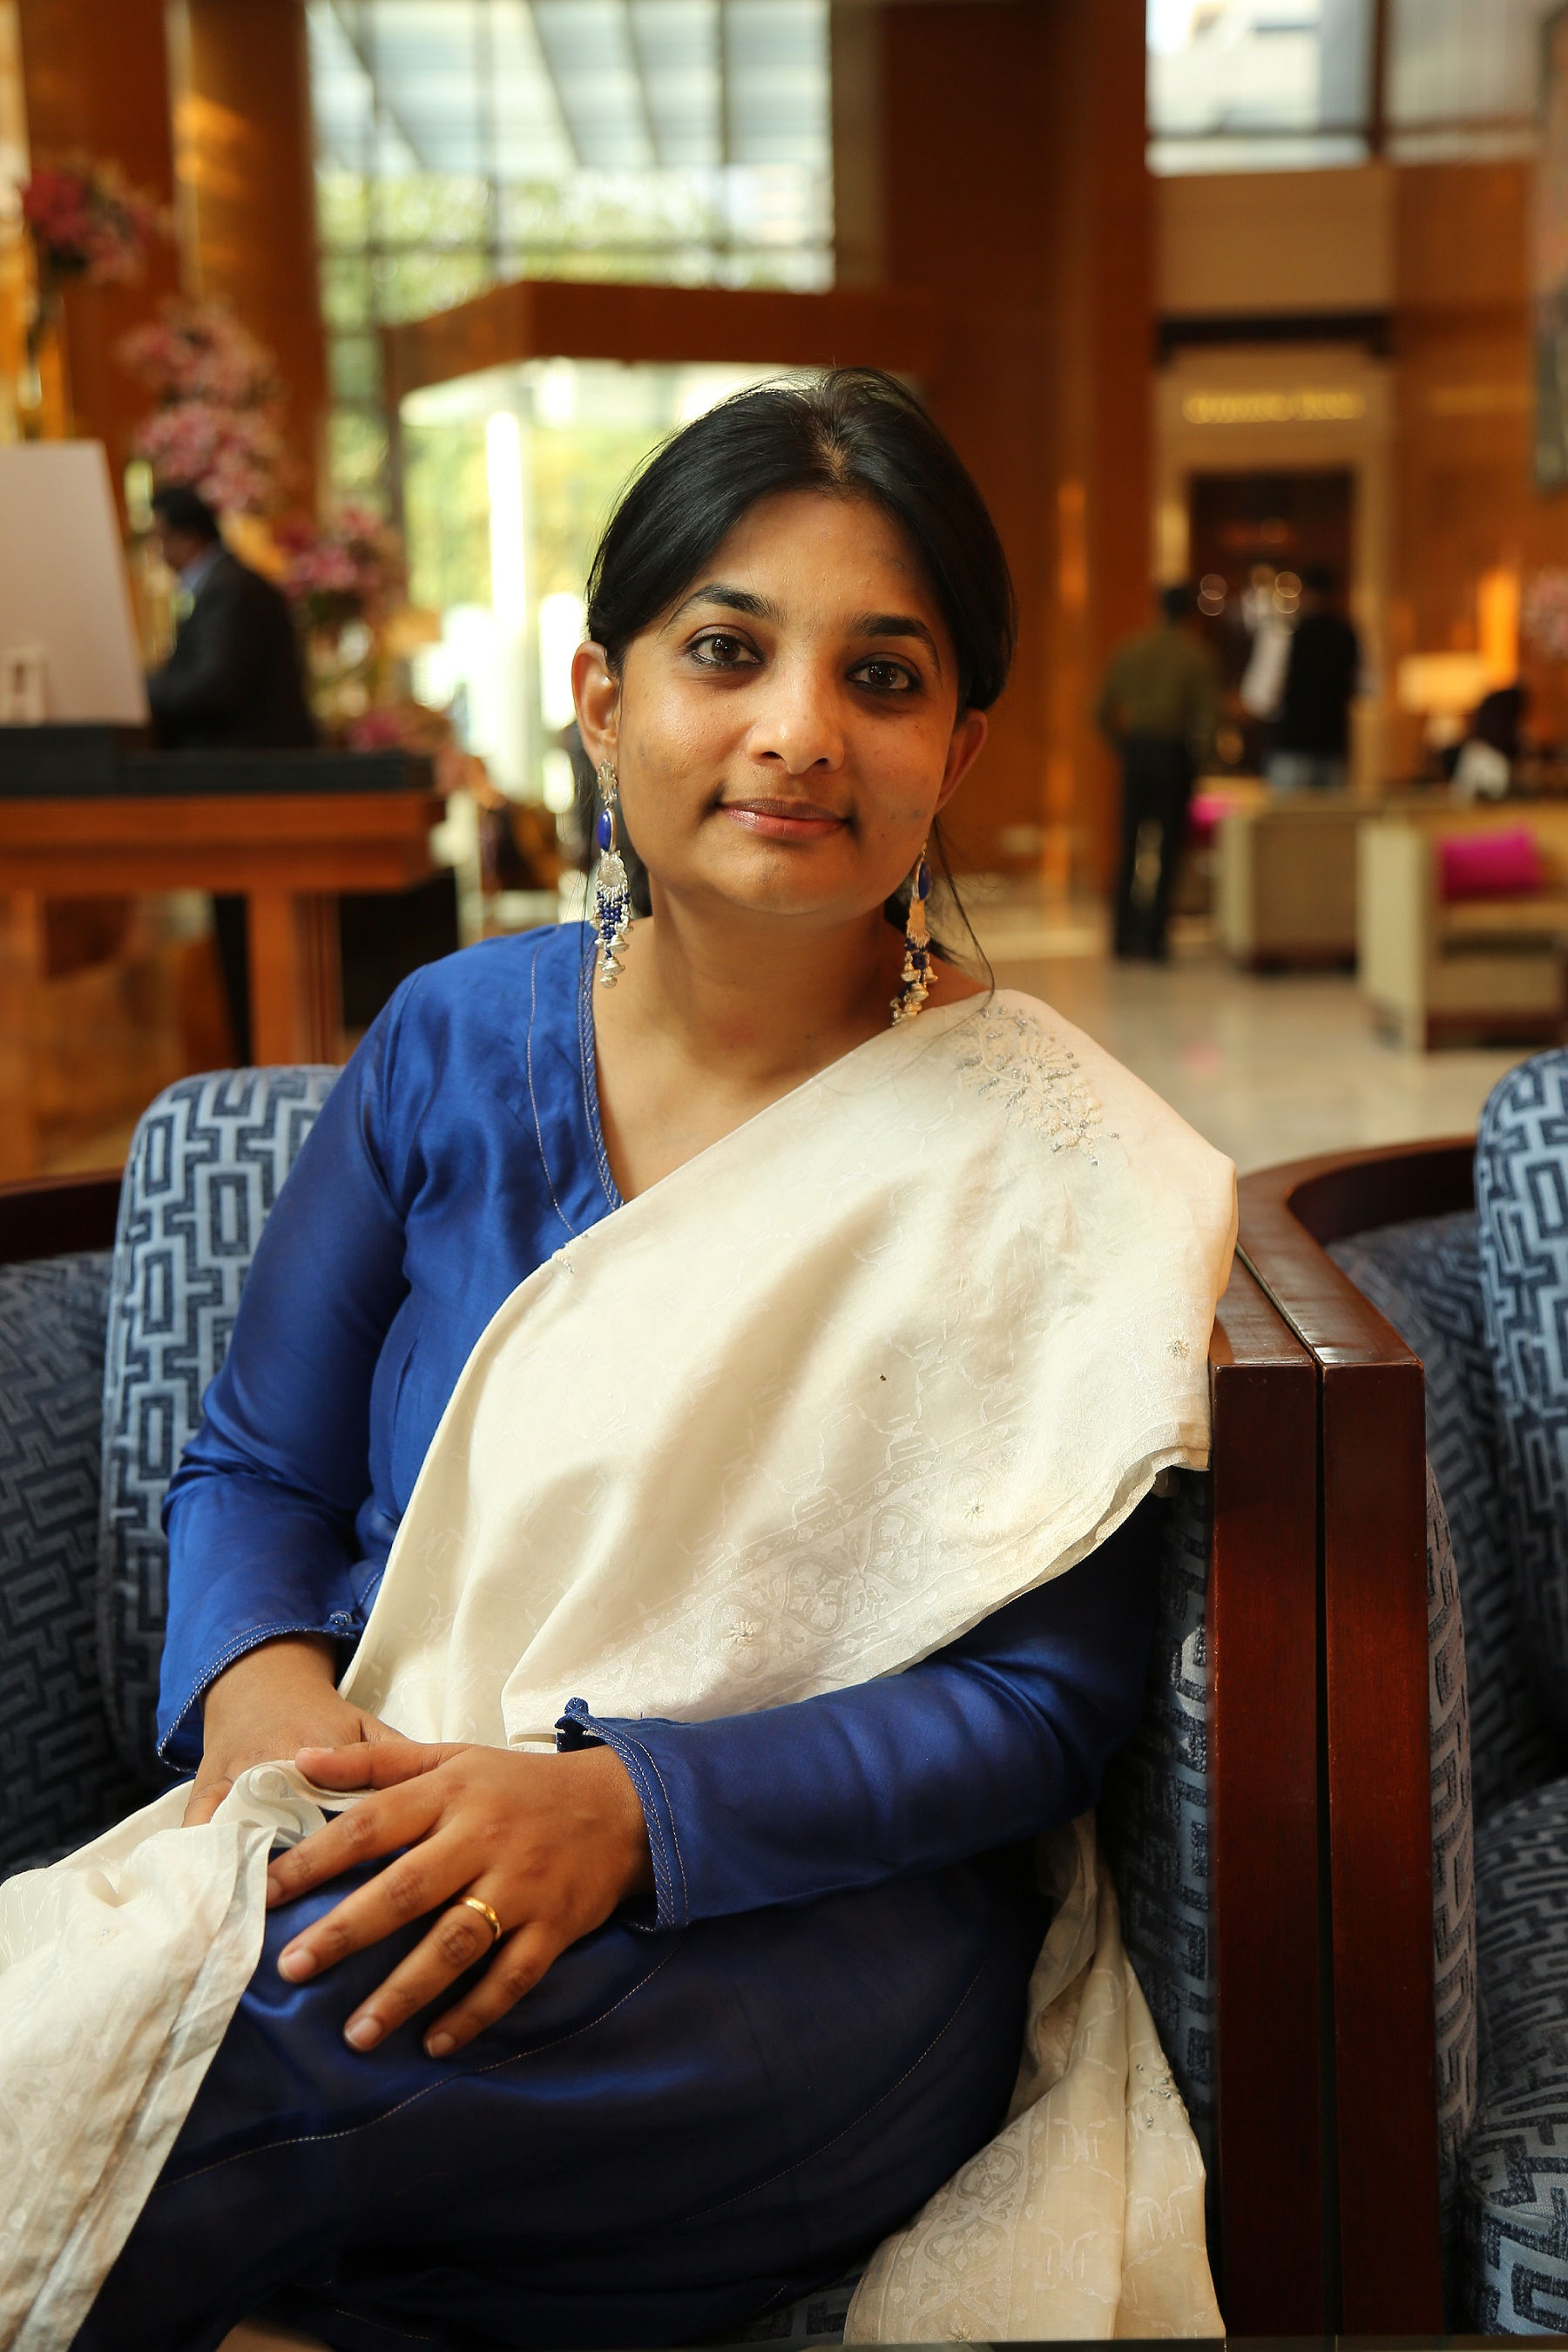 zee 5 Archana Anand, Chief Business Officer, ZEE5 Global.jpg